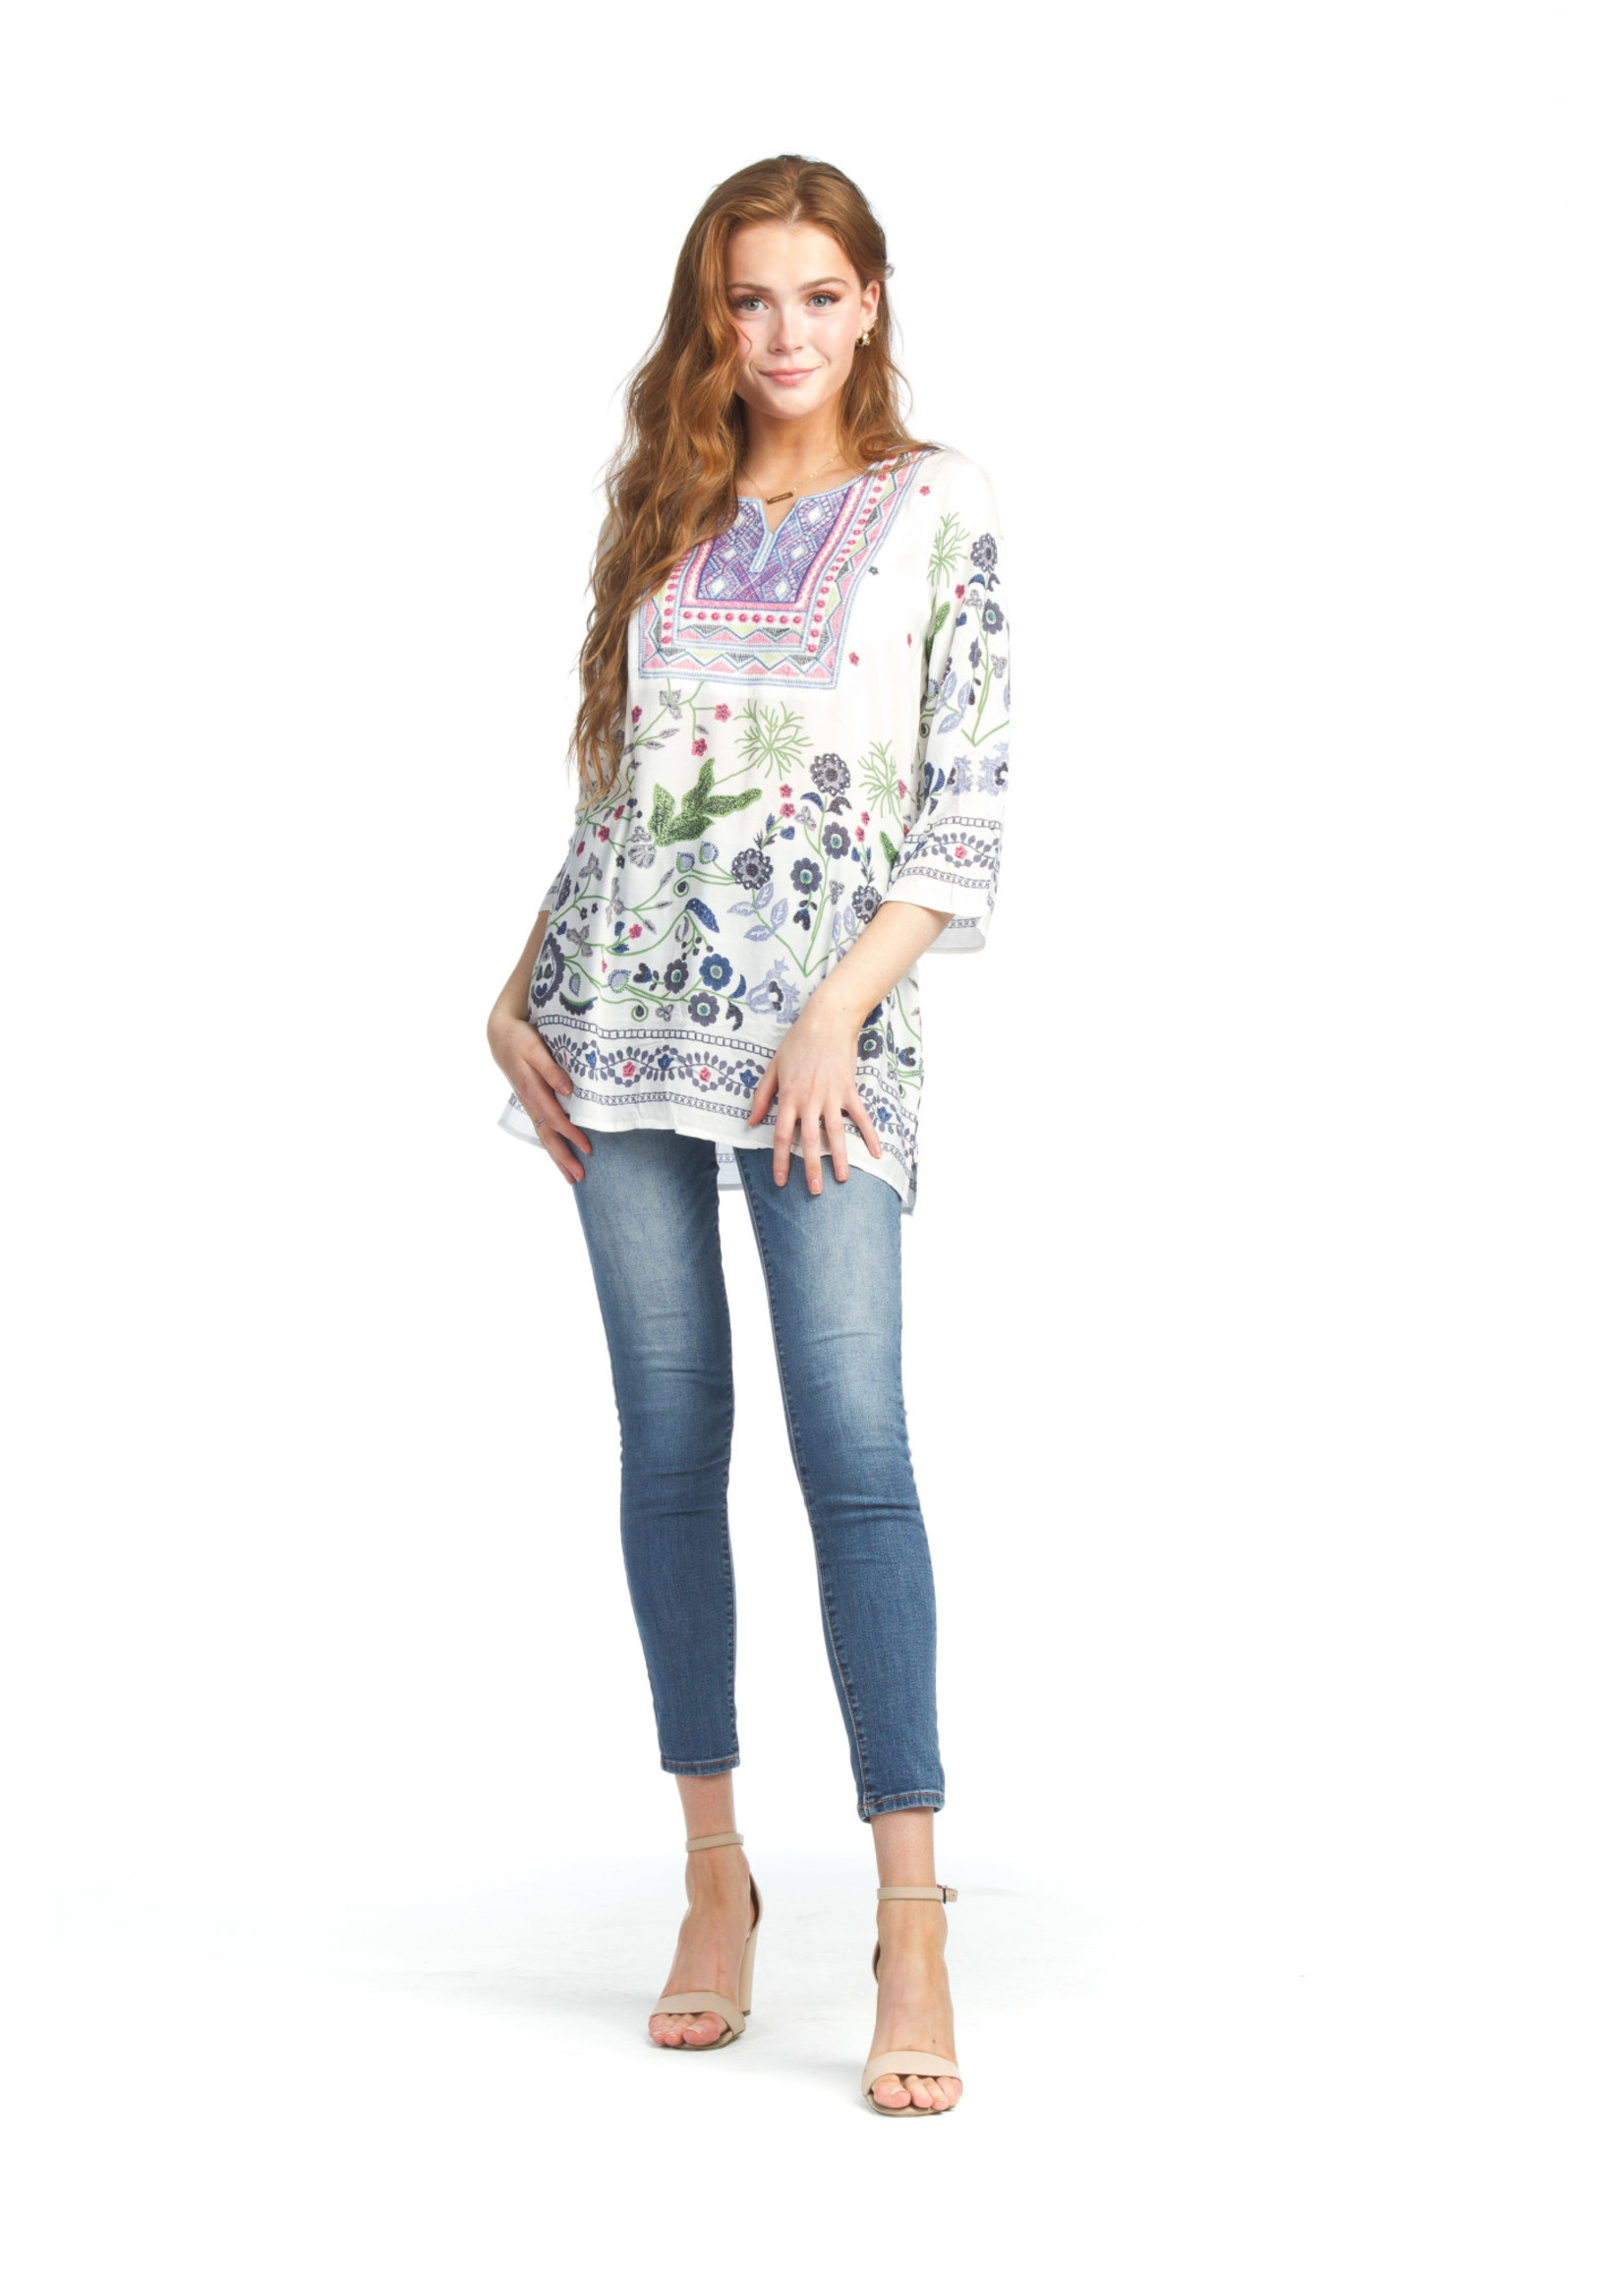 Papillon Embroidered Blouse With Floral Design